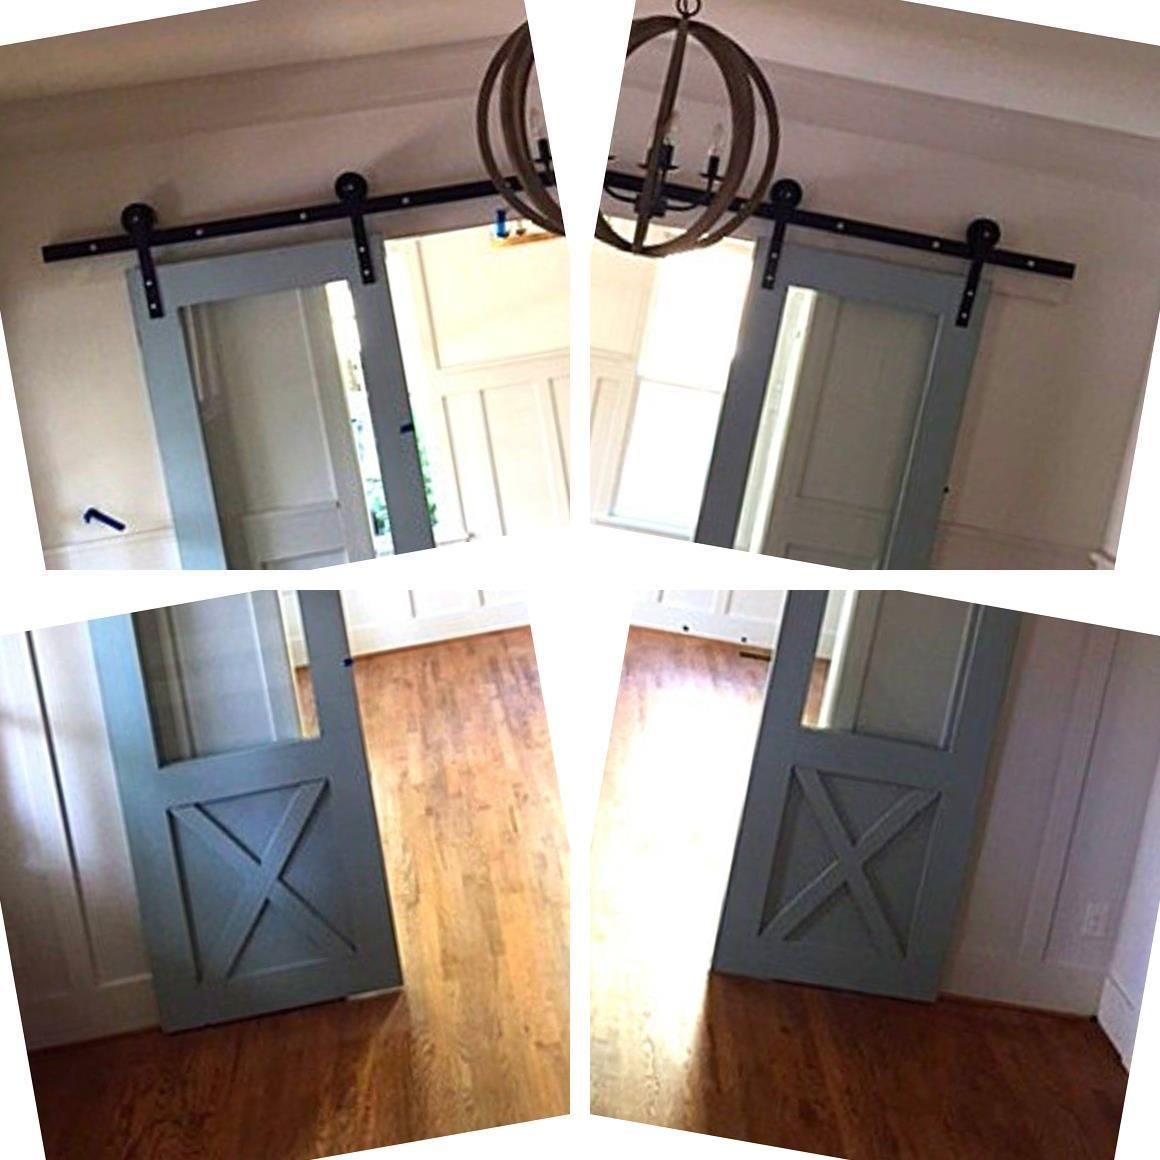 Exterior Barn Doors Sliding Barn Door Hardware For Double Doors Sliding Glass Barn Doors In 2020 Interior Barn Doors Barn Doors Sliding Sliding Doors Interior